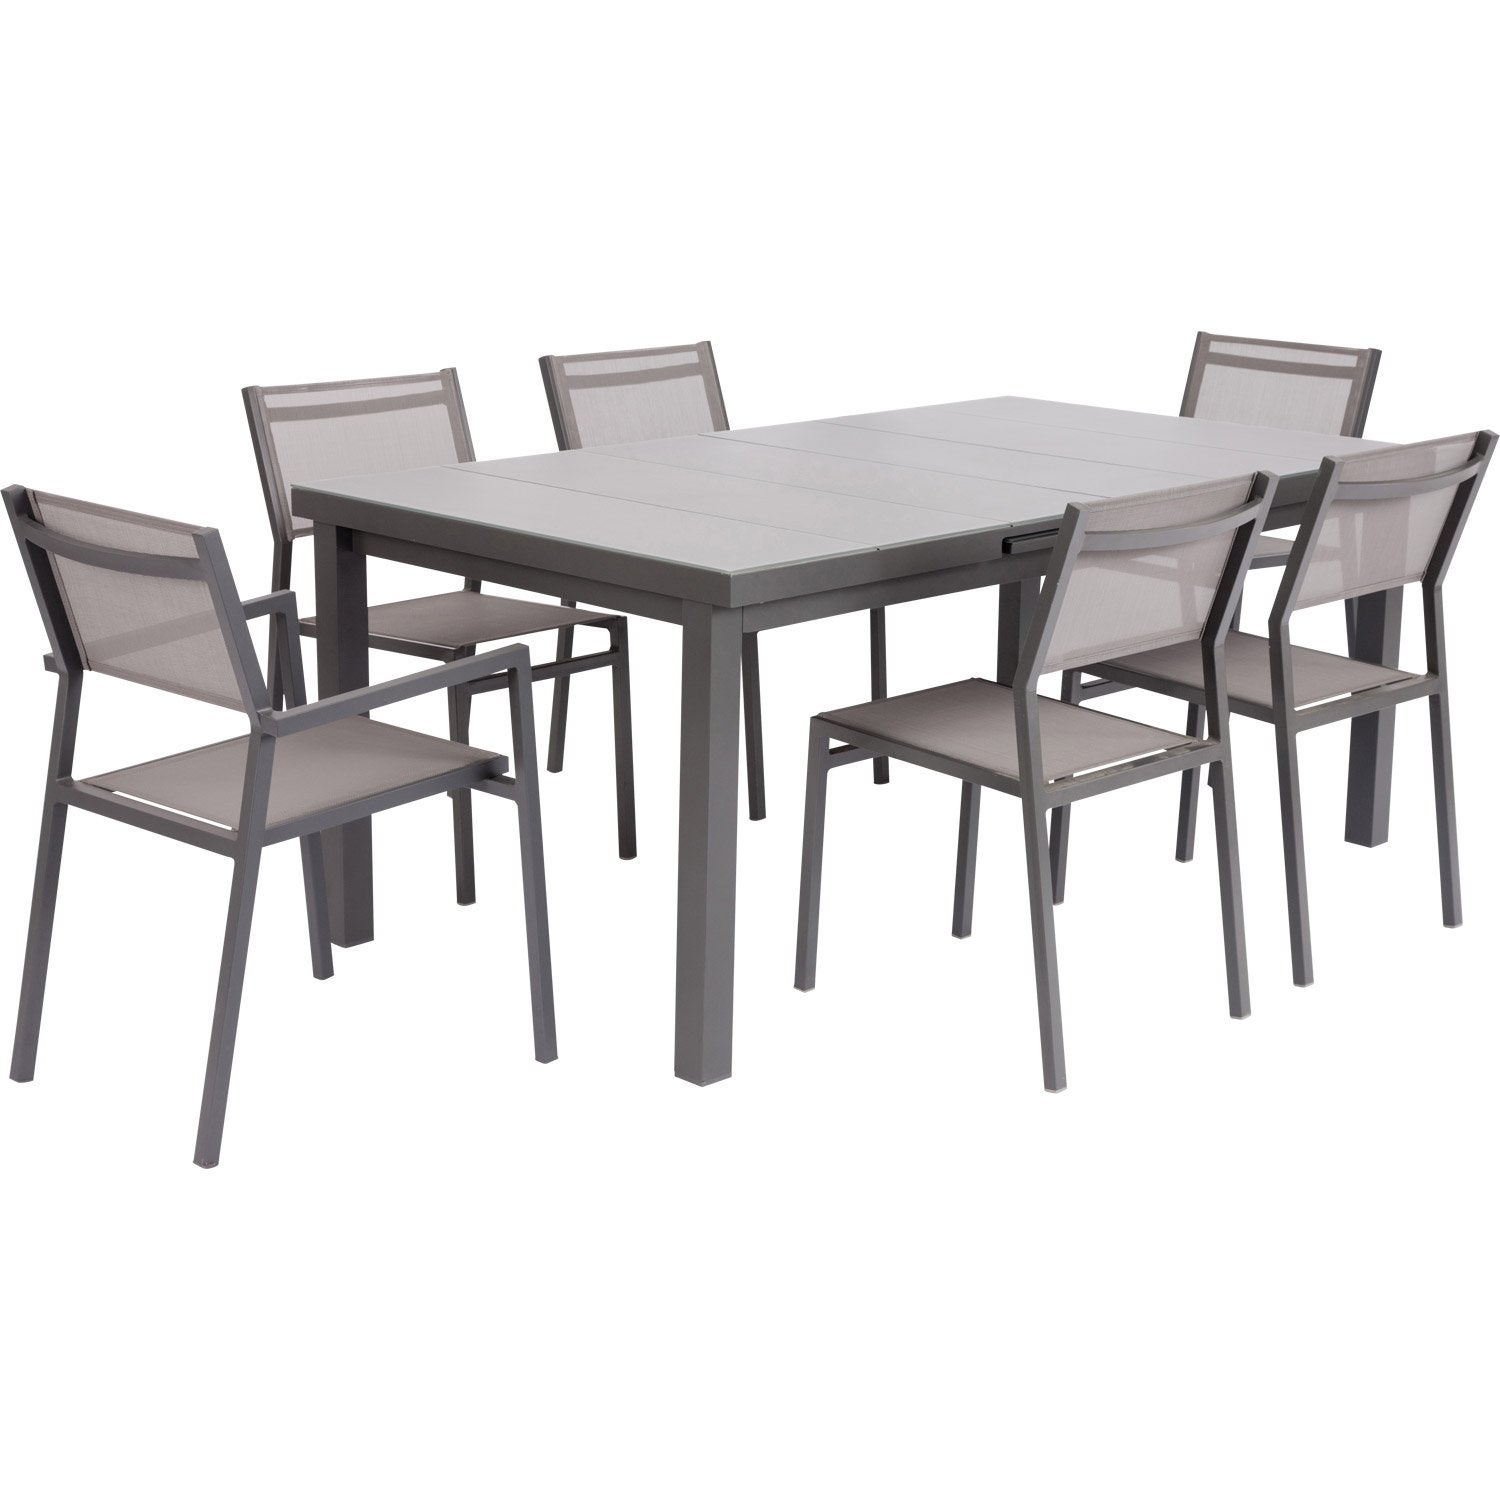 Table de jardin naterial niagara rectangulaire gris 10 personnes leroy merlin - Leroy merlin table jardin ...